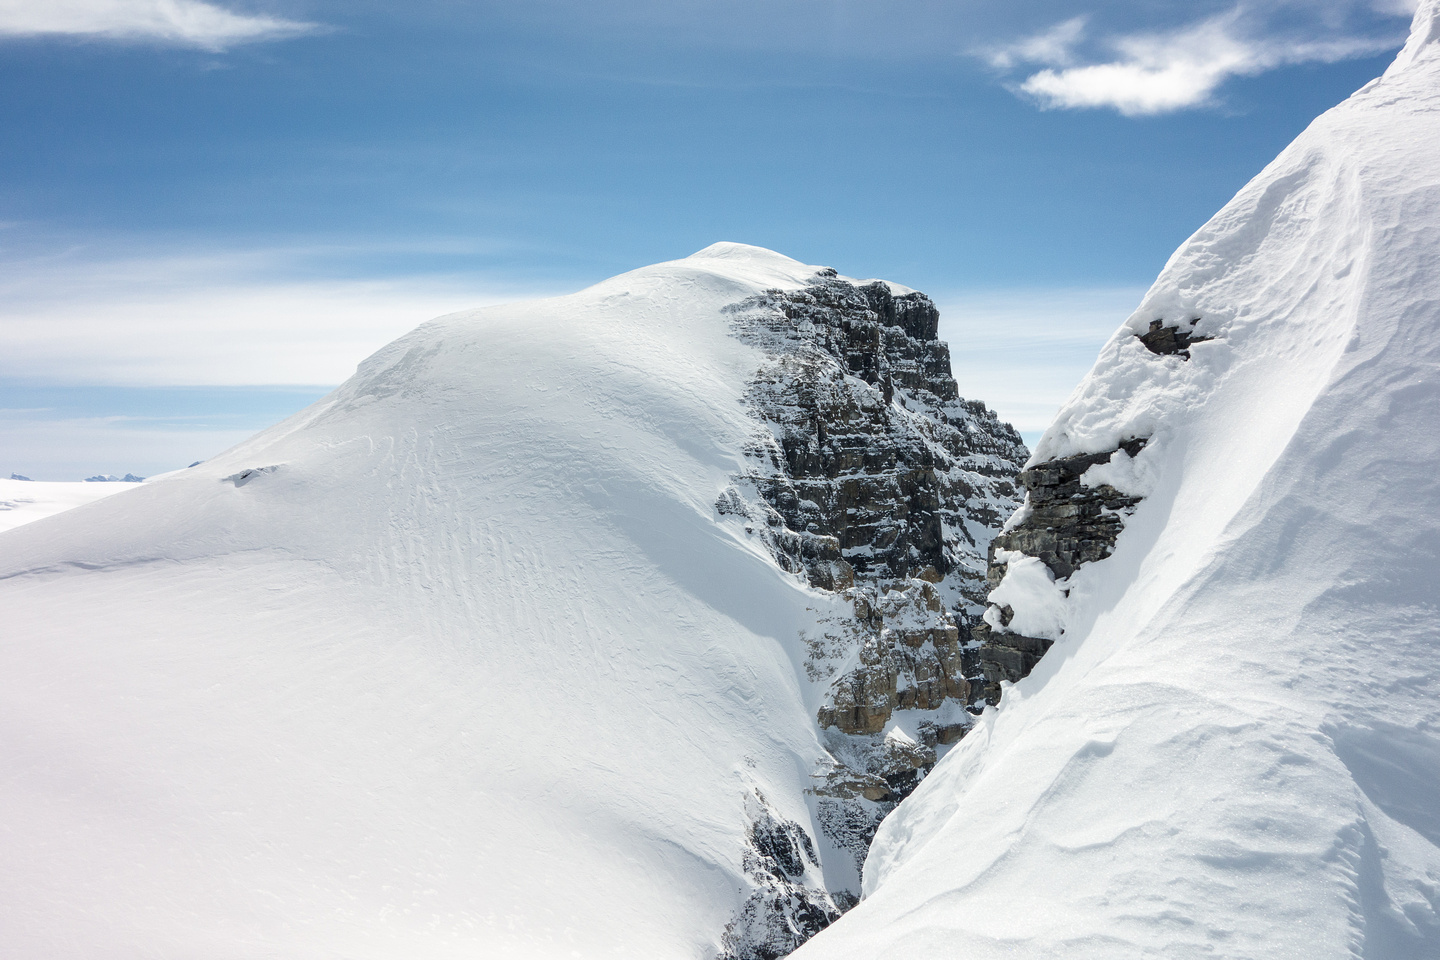 Off the face and looking along the summit ridge over at South Twin. You can spot the rocks we skied to on South Twin and the ice bulge where the crevasse incident happened.